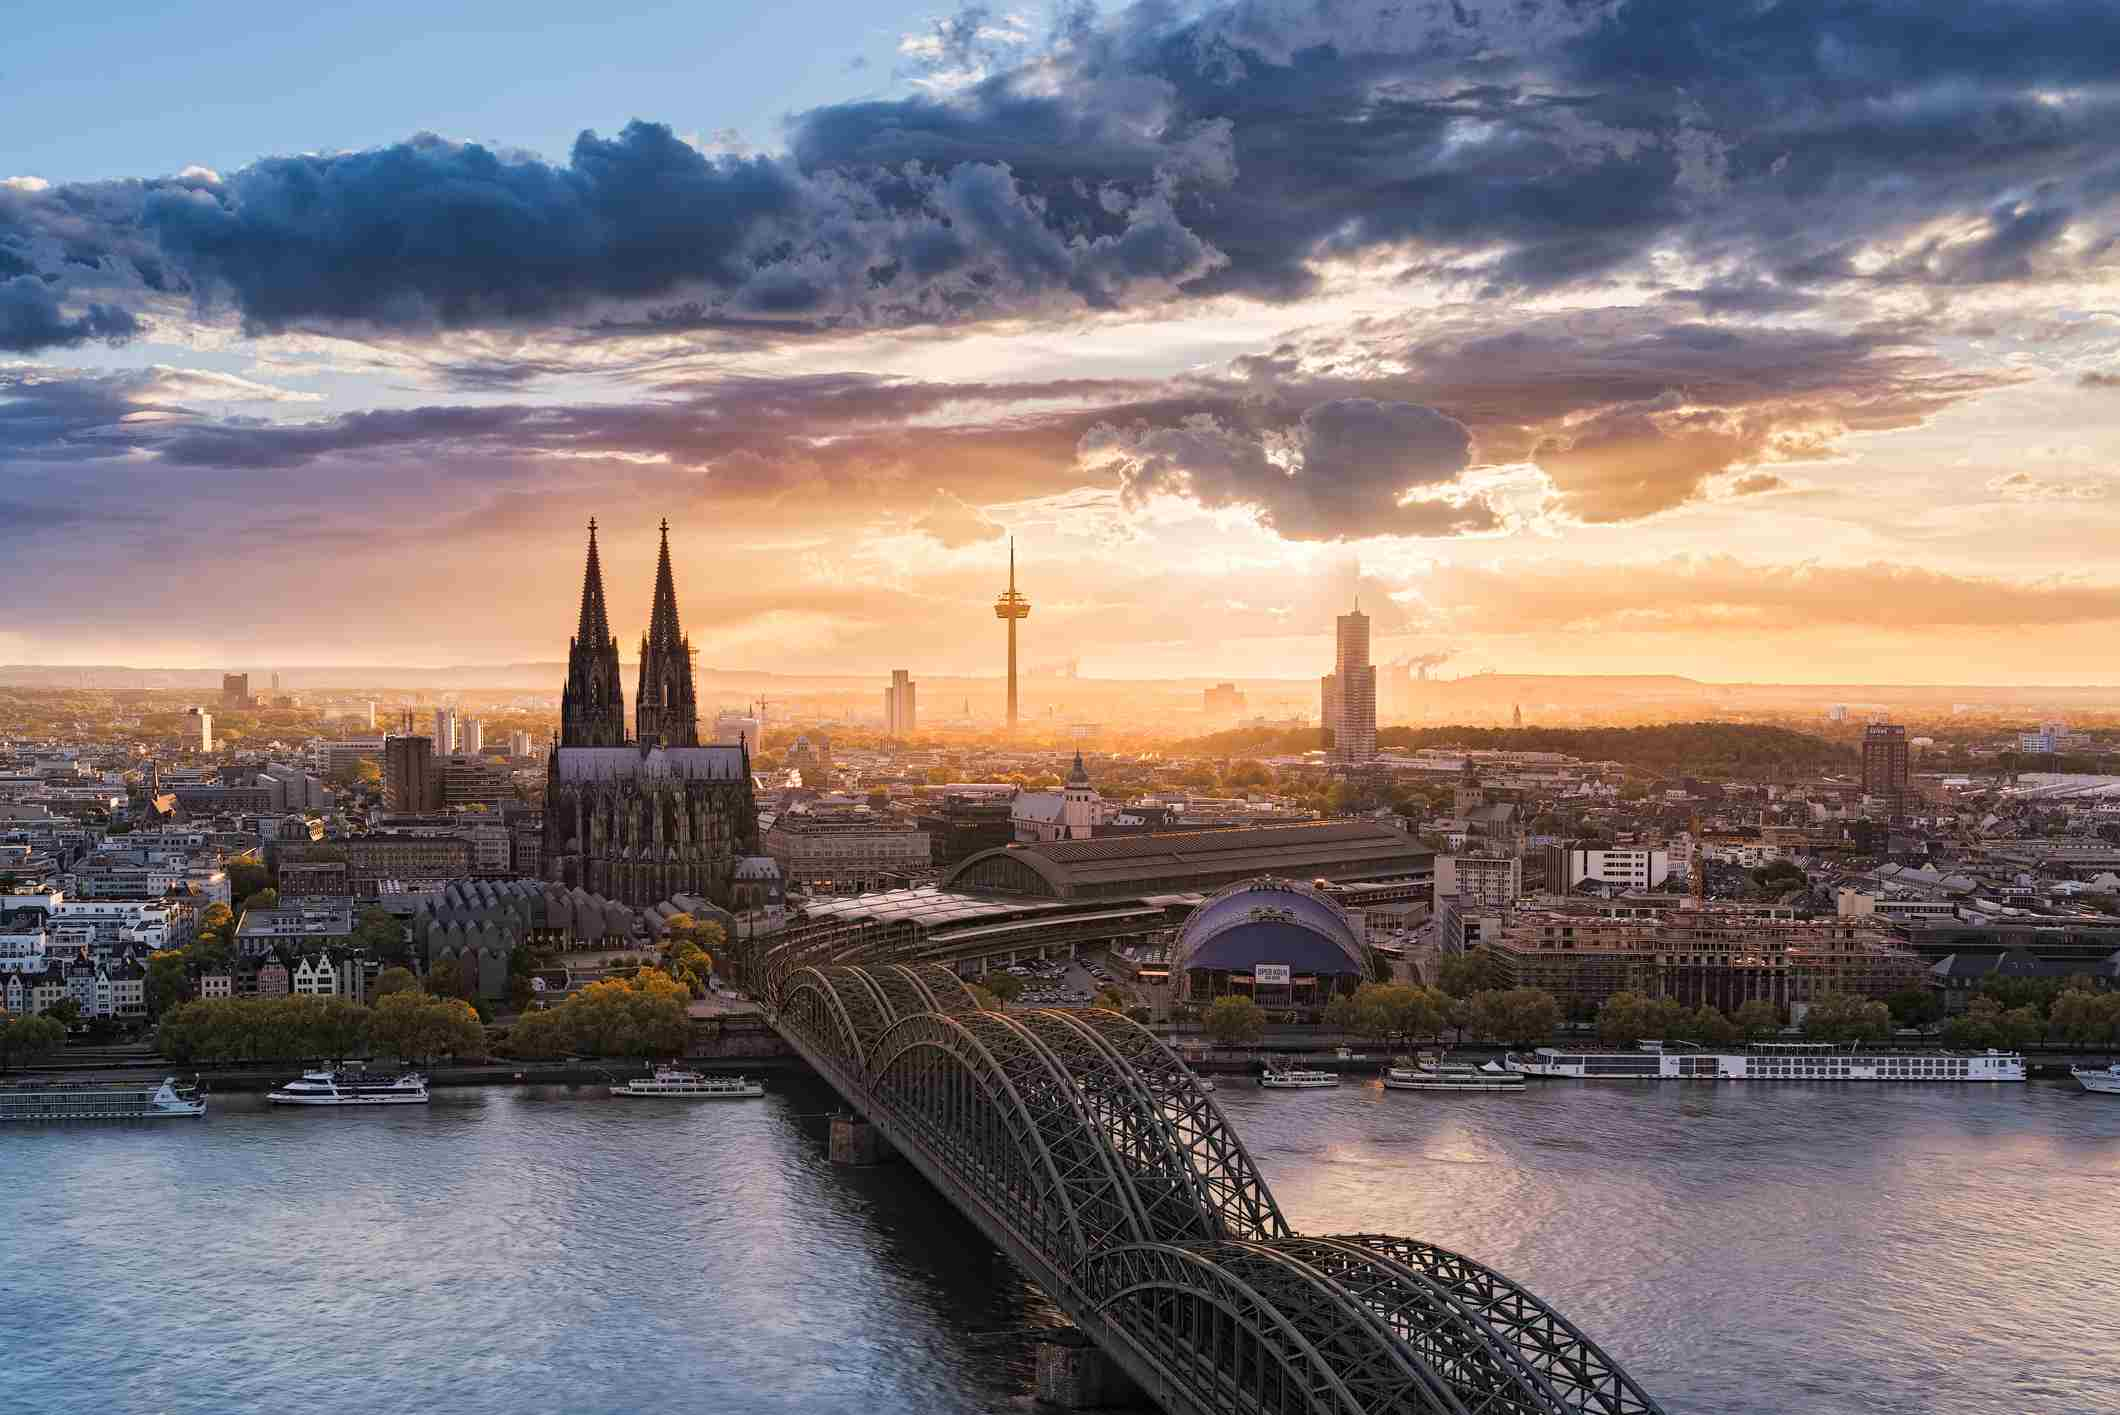 Cologne and Rhine River, Germany at sunset